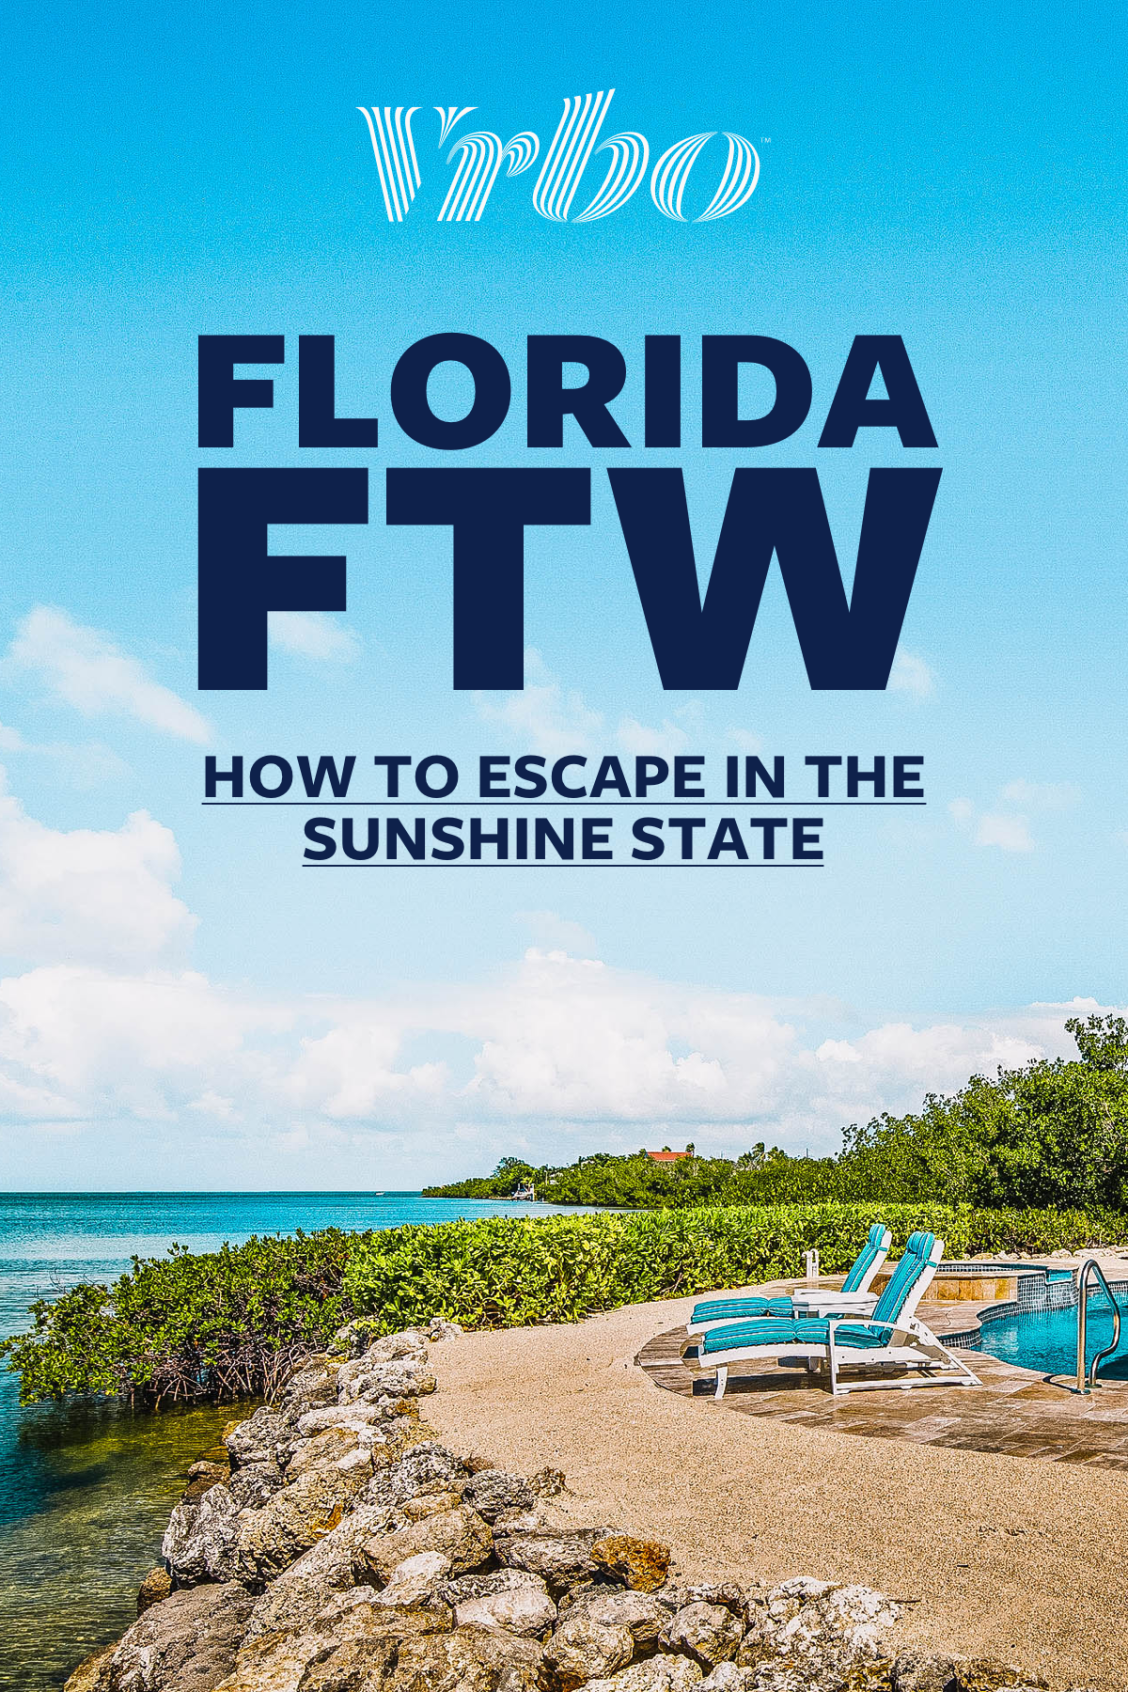 When It Comes To Florida Vacations There Are Loads Of Choices We Ve Compiled A List Of The Best Beachfront Getaways Florida Travel Florida Vacation Florida